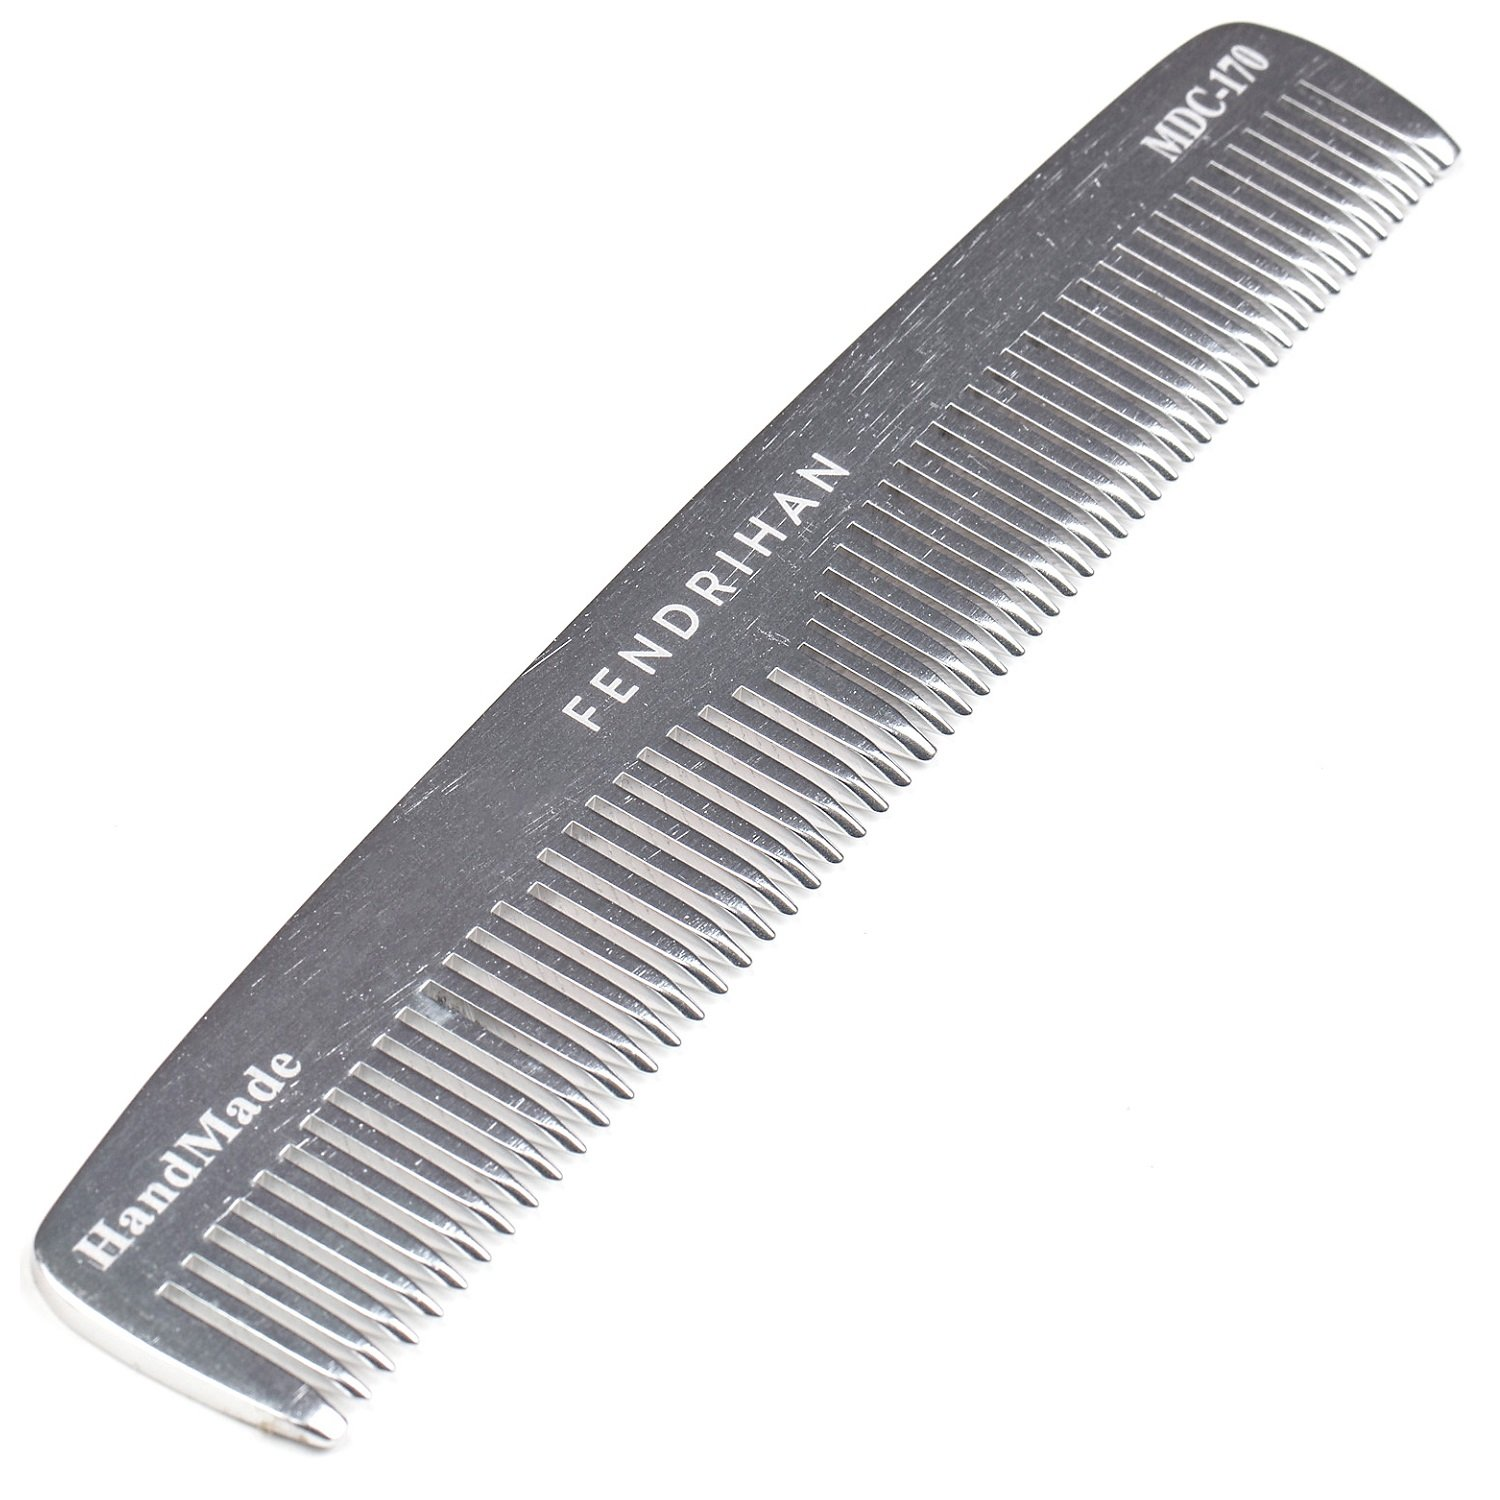 Fendrihan Sturdy Metal Double Tooth 2021 model Comb Challenge the lowest price In 6.6 Barber Grooming